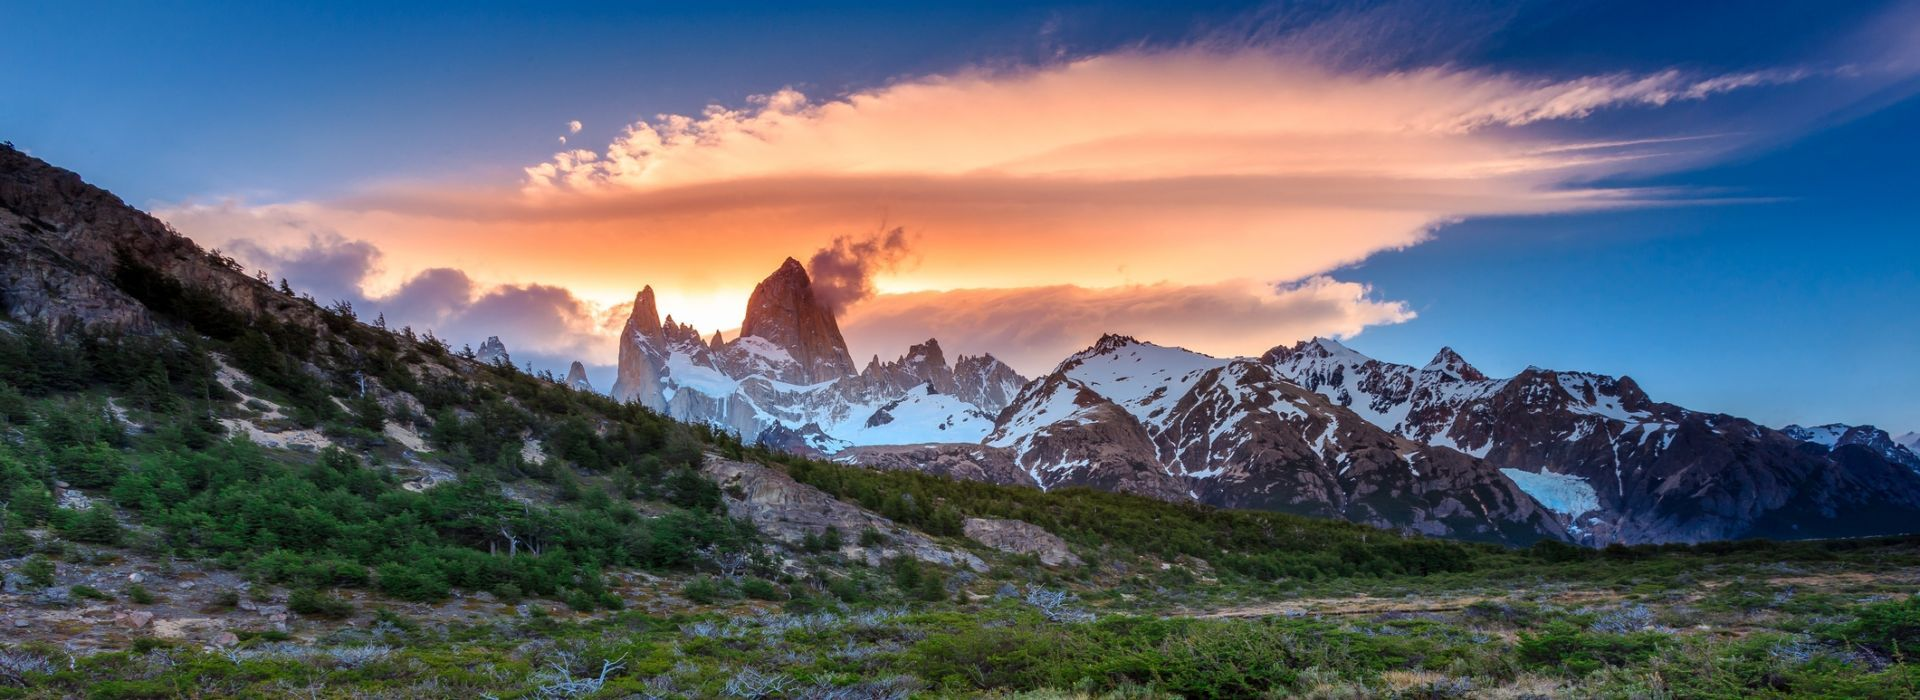 Cultural, religious and historic sites Tours in El Calafate